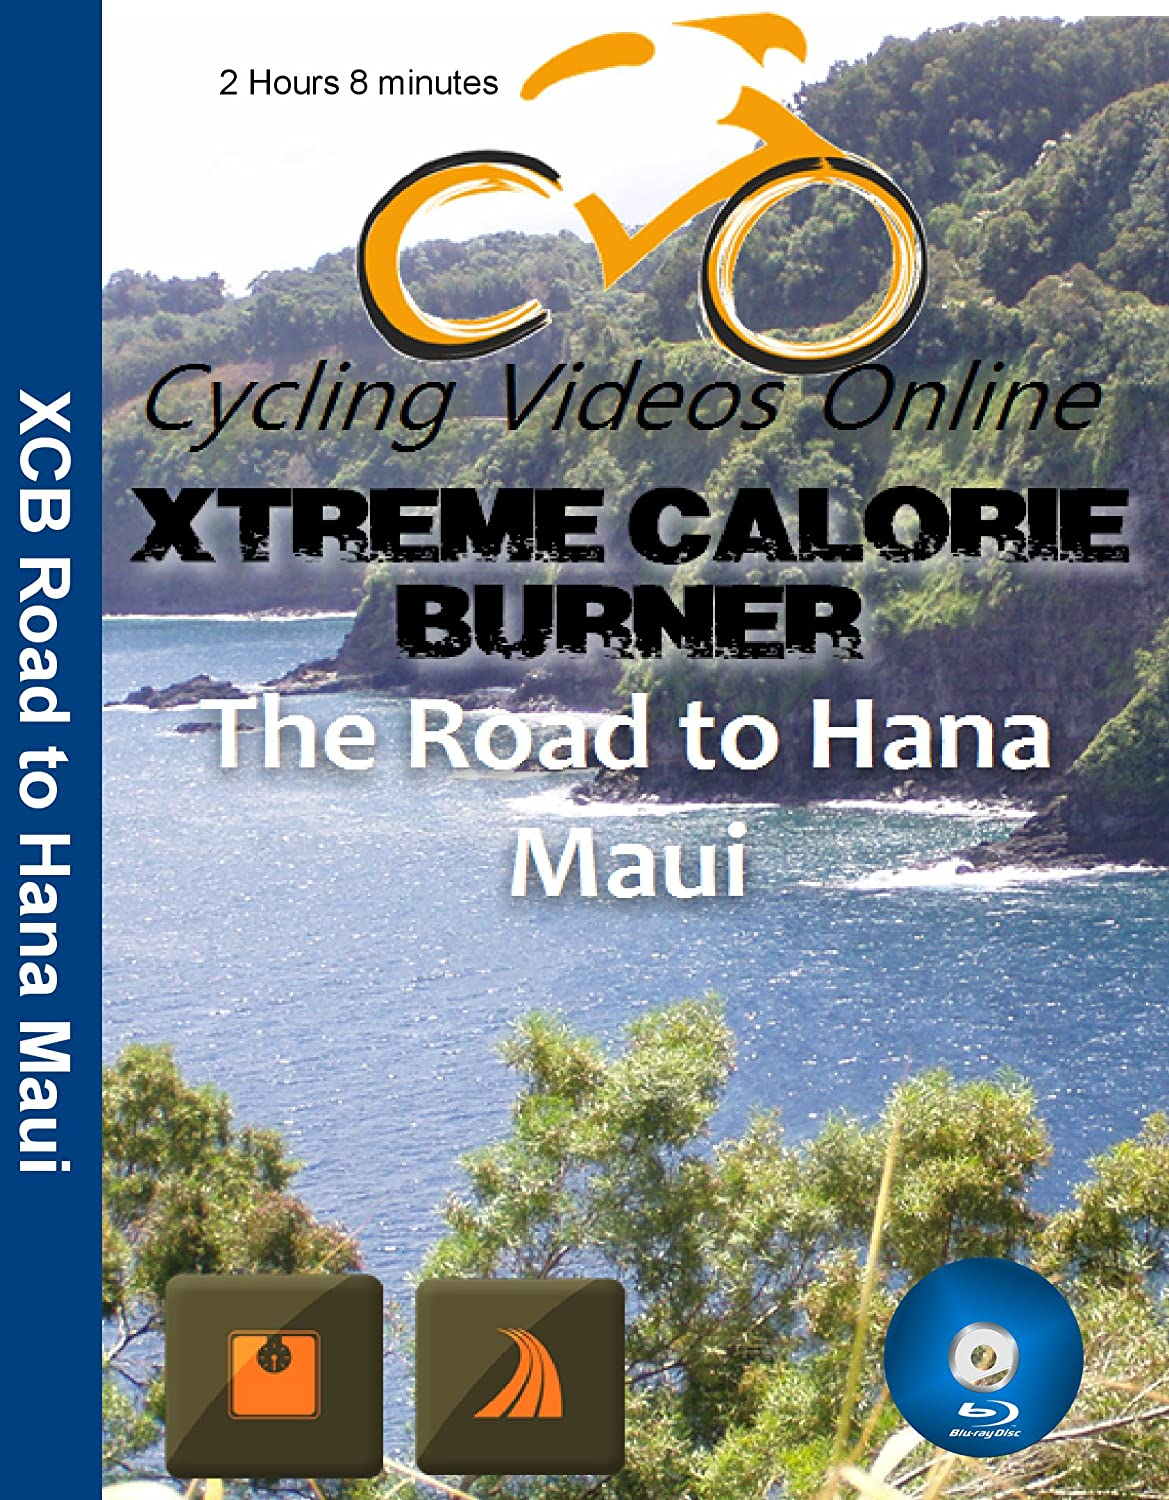 Extreme San Diego Mall Calorie Burner the Road Virtual Super popular specialty store Indoor Maui. Cyclin Hana